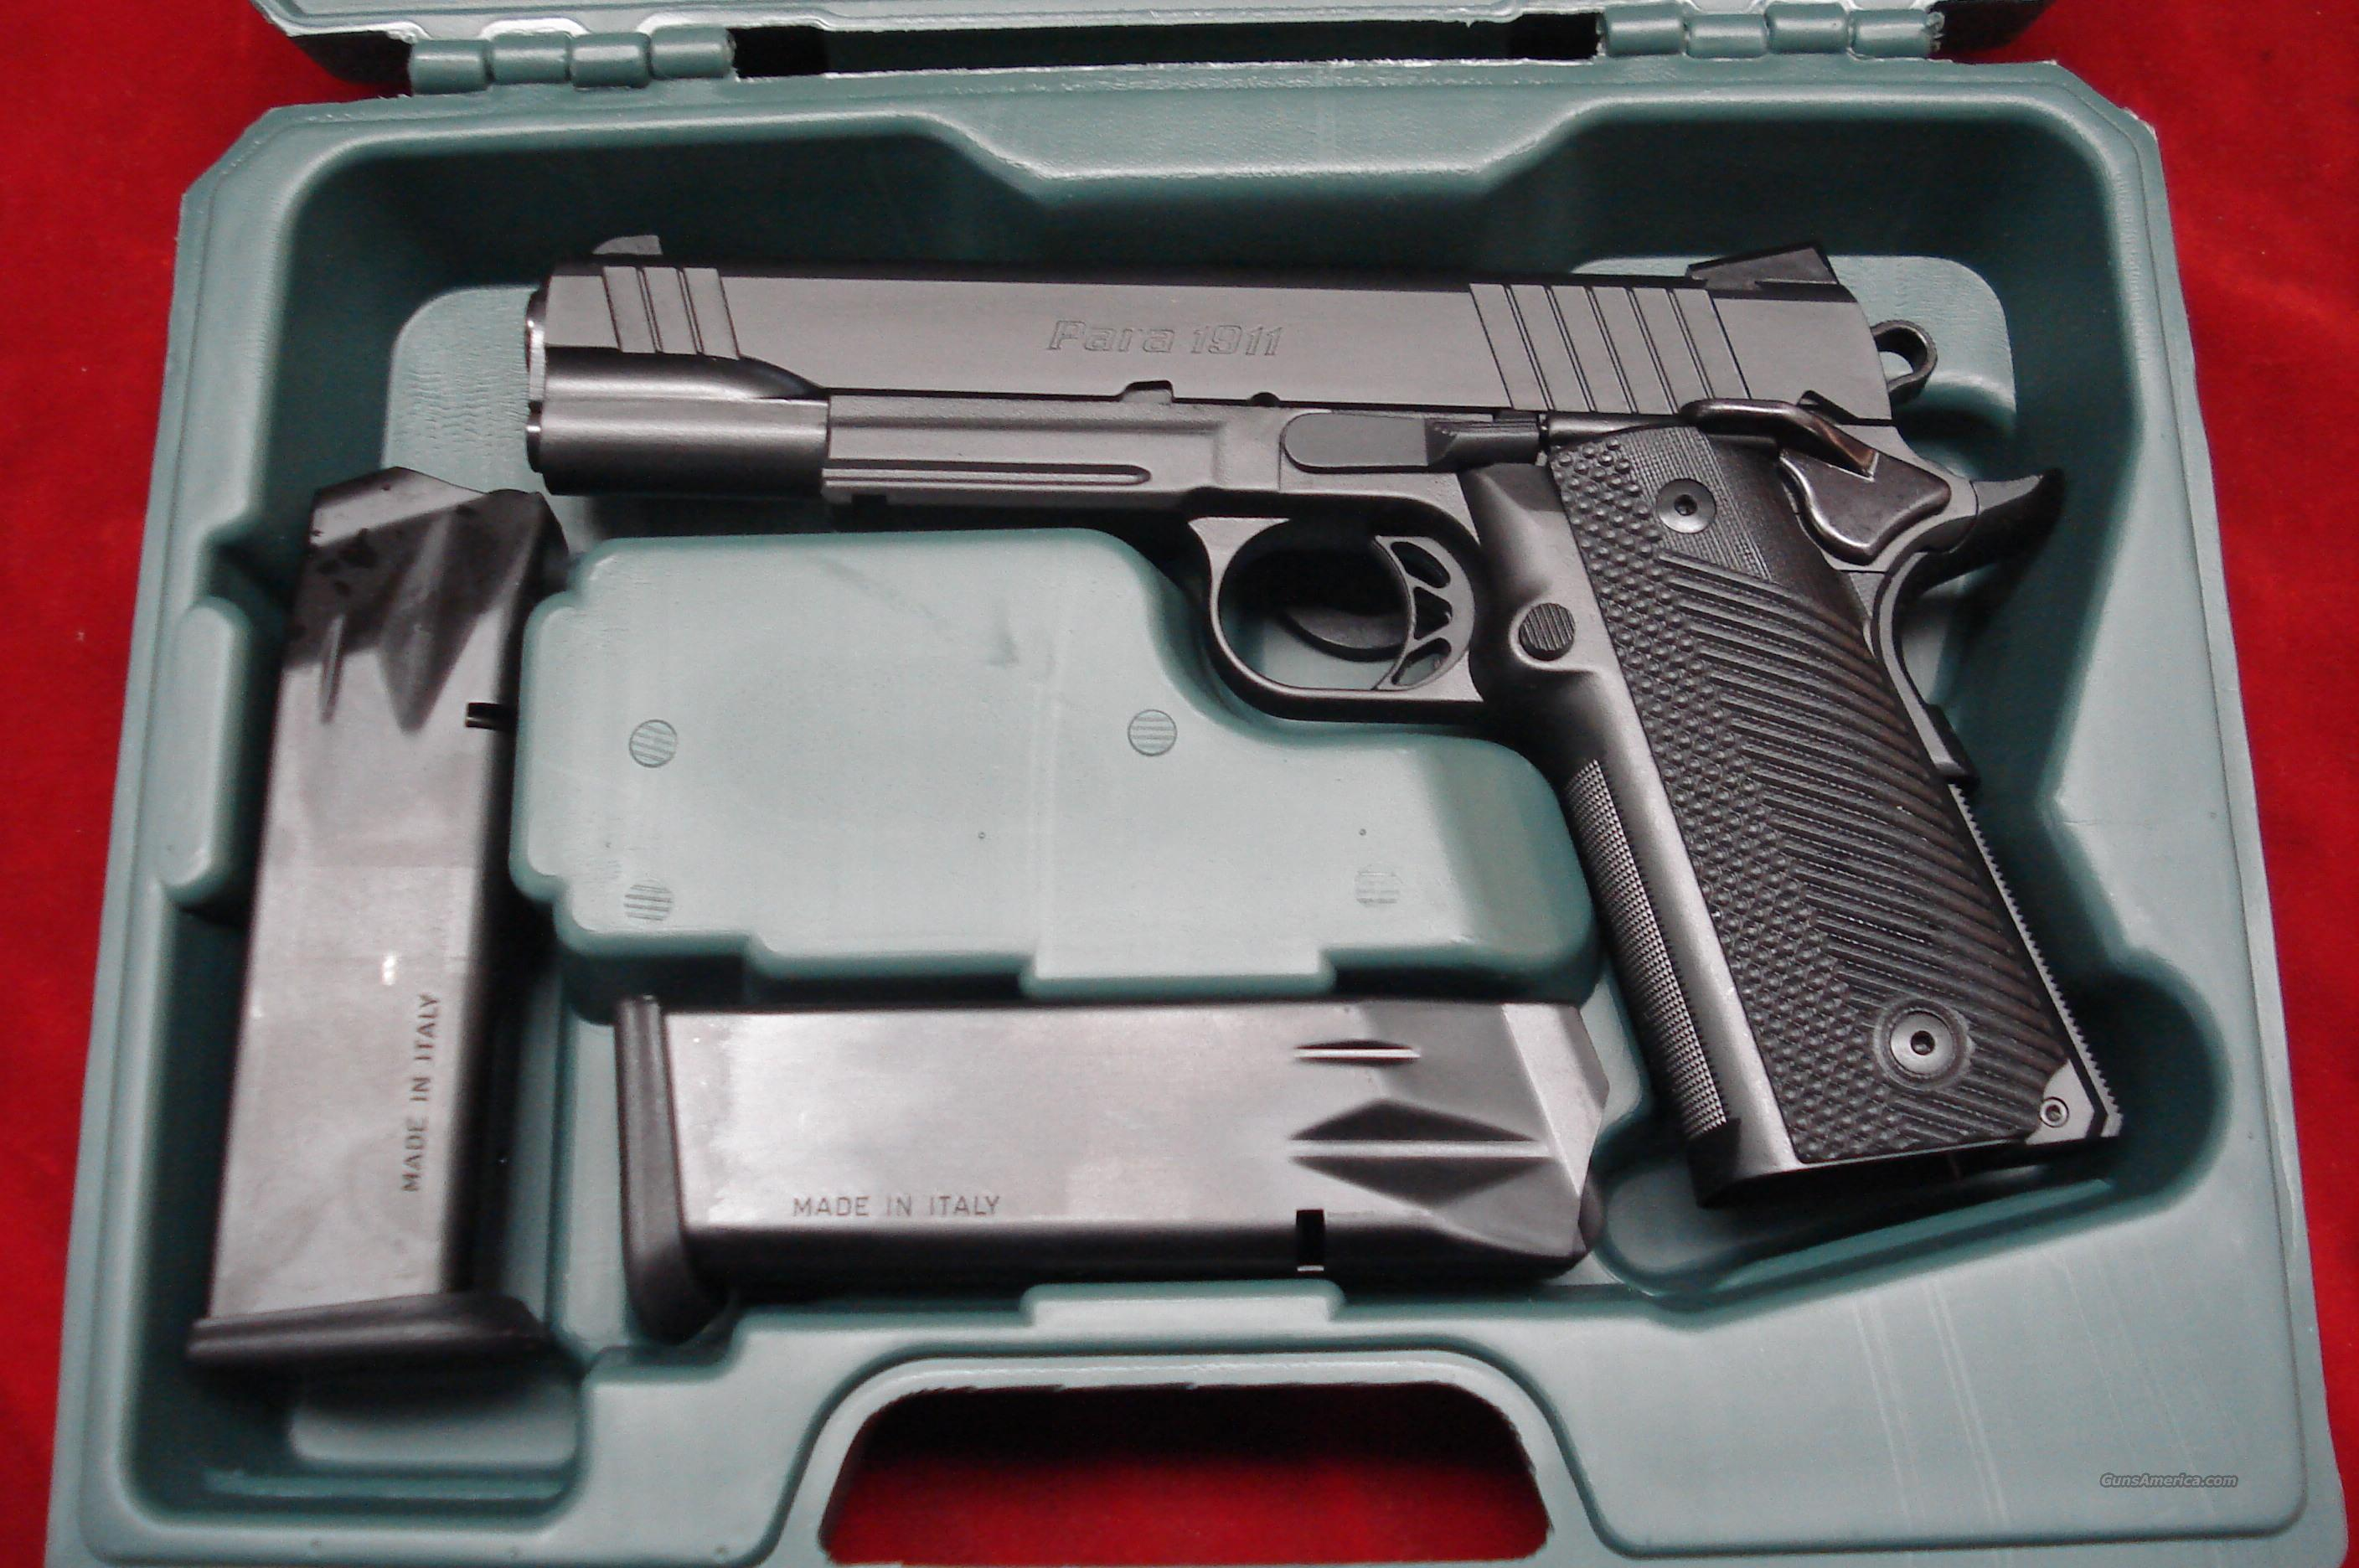 PARA ORDNANCE BLACK OPS 14-45 STAINLESS BLACK IONBOND FINISH HIGH CAPACITY 1911 .45 ACP CAL WITH TAC RAIL AND NIGHT SIGHTS NEW  Guns > Pistols > Para Ordnance Pistols